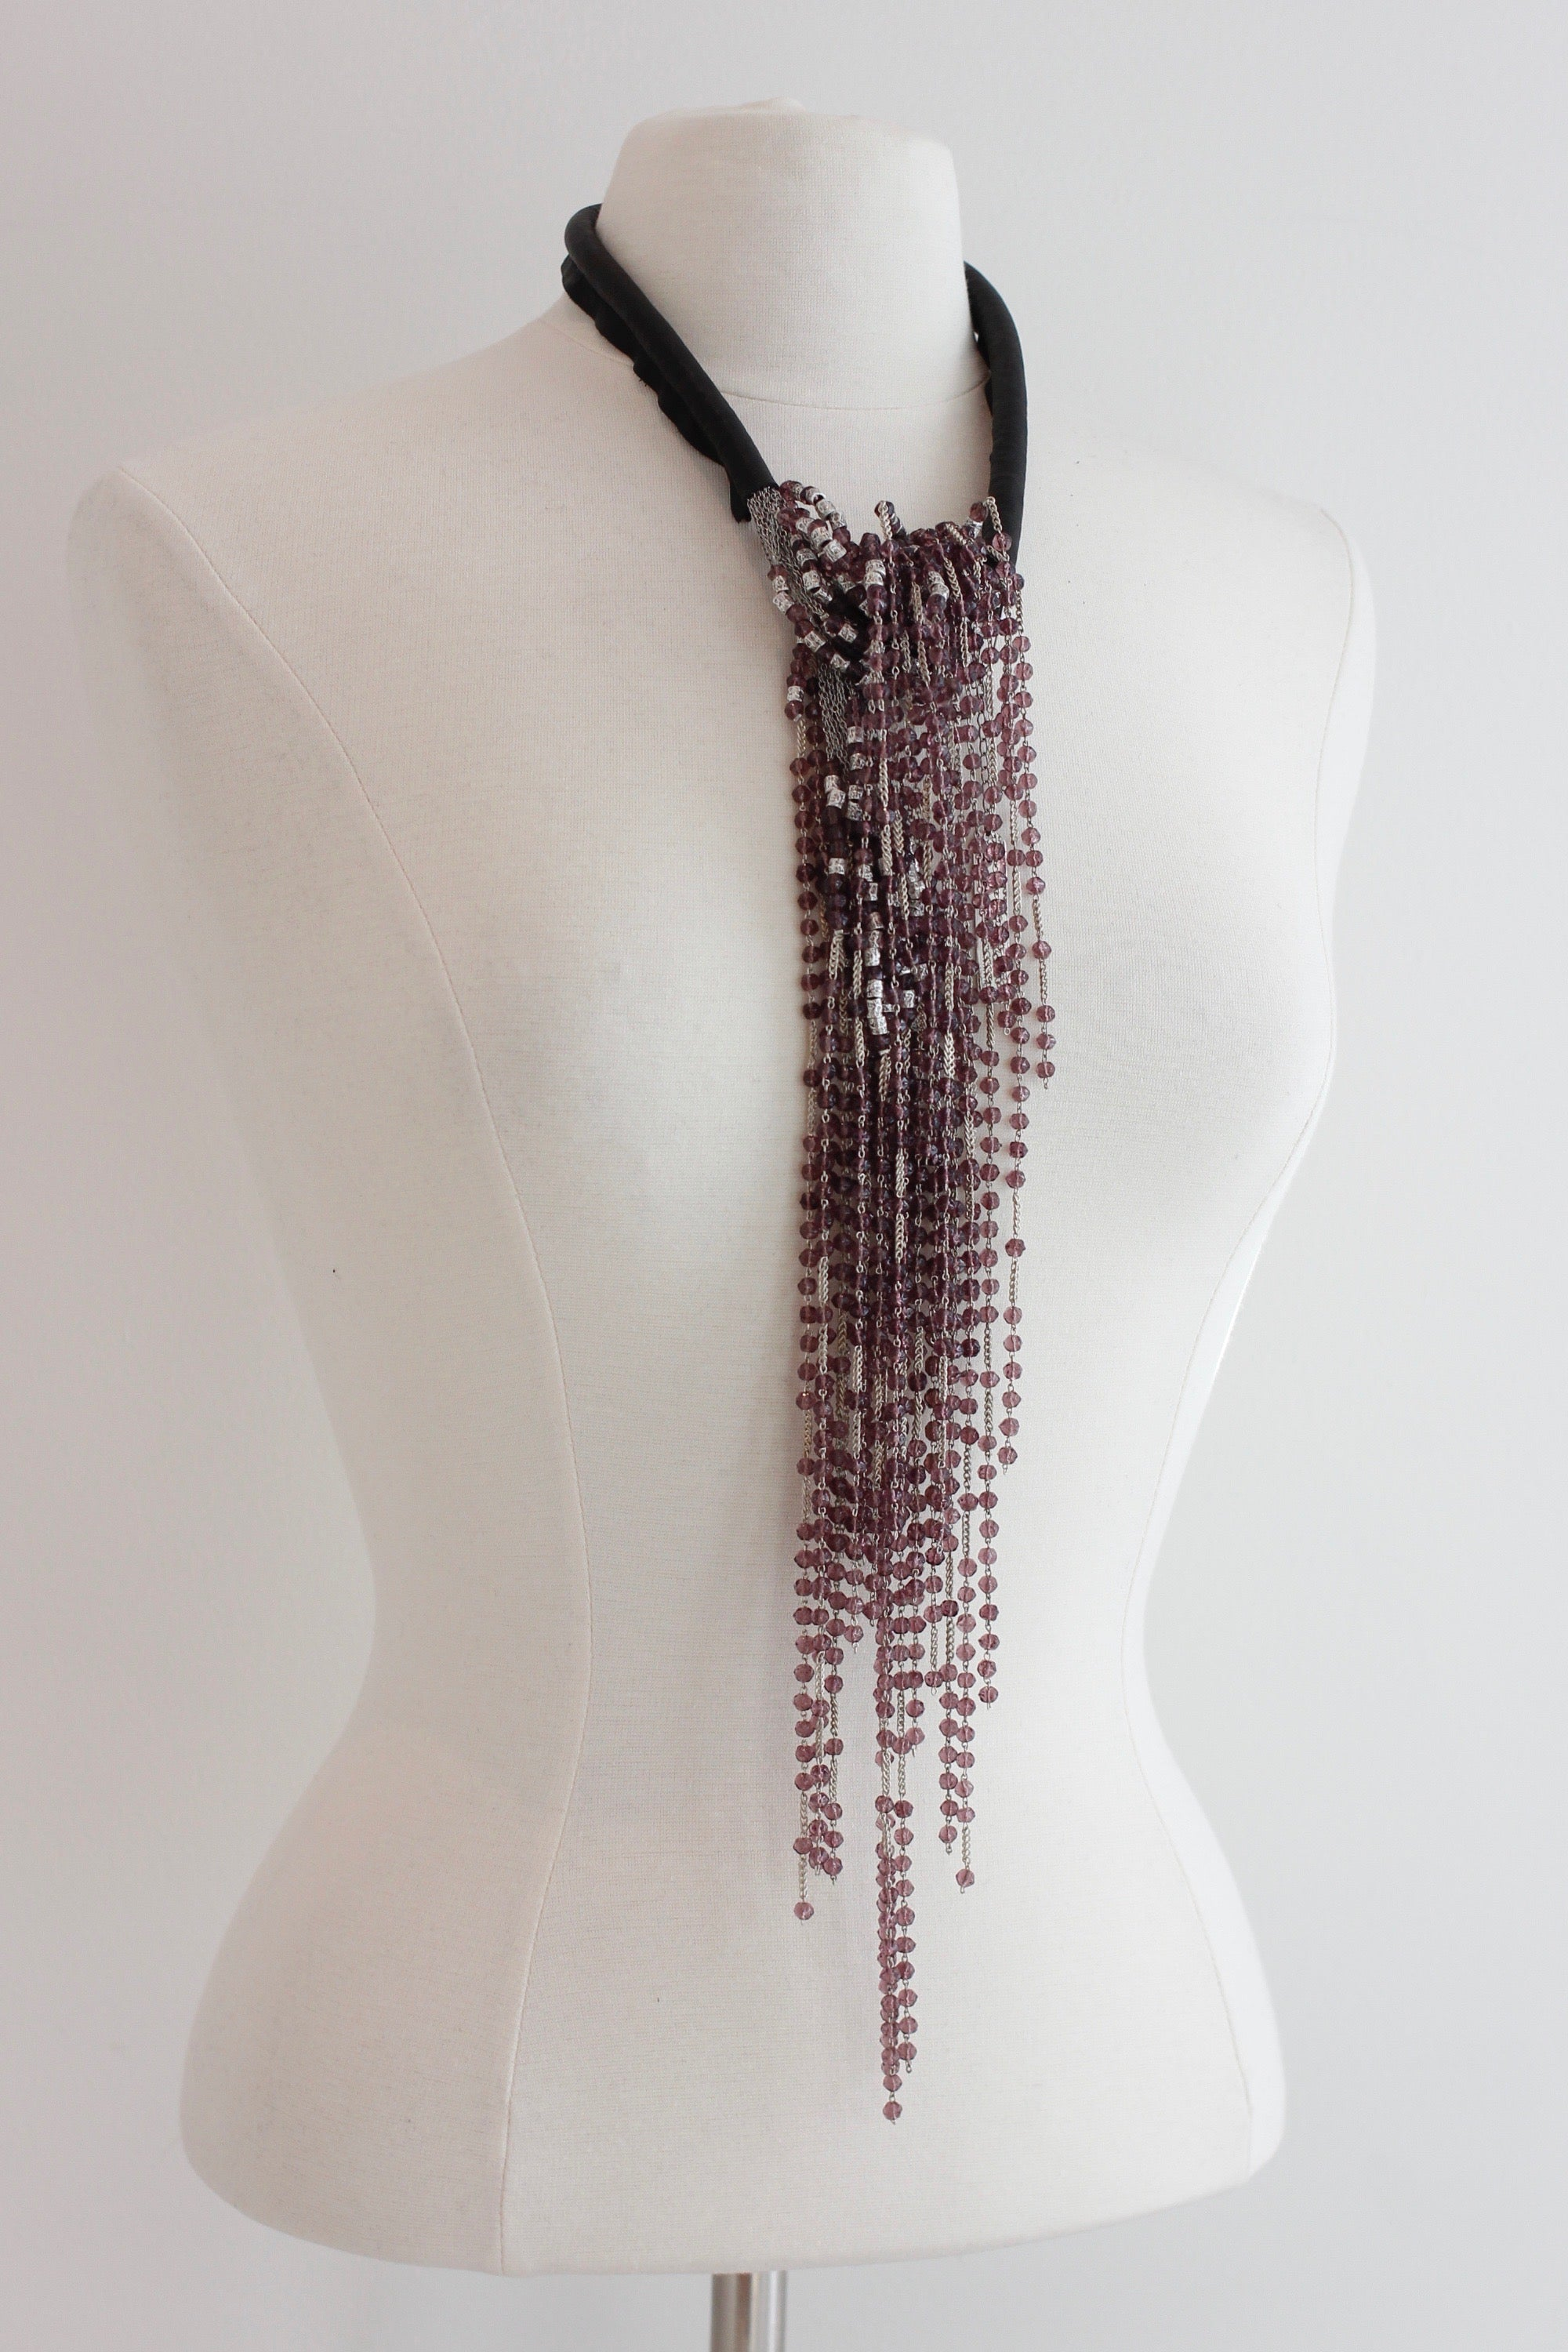 JEAN-FRANCOIS MIMILLA Glass Bead And Leather Necklace COL107